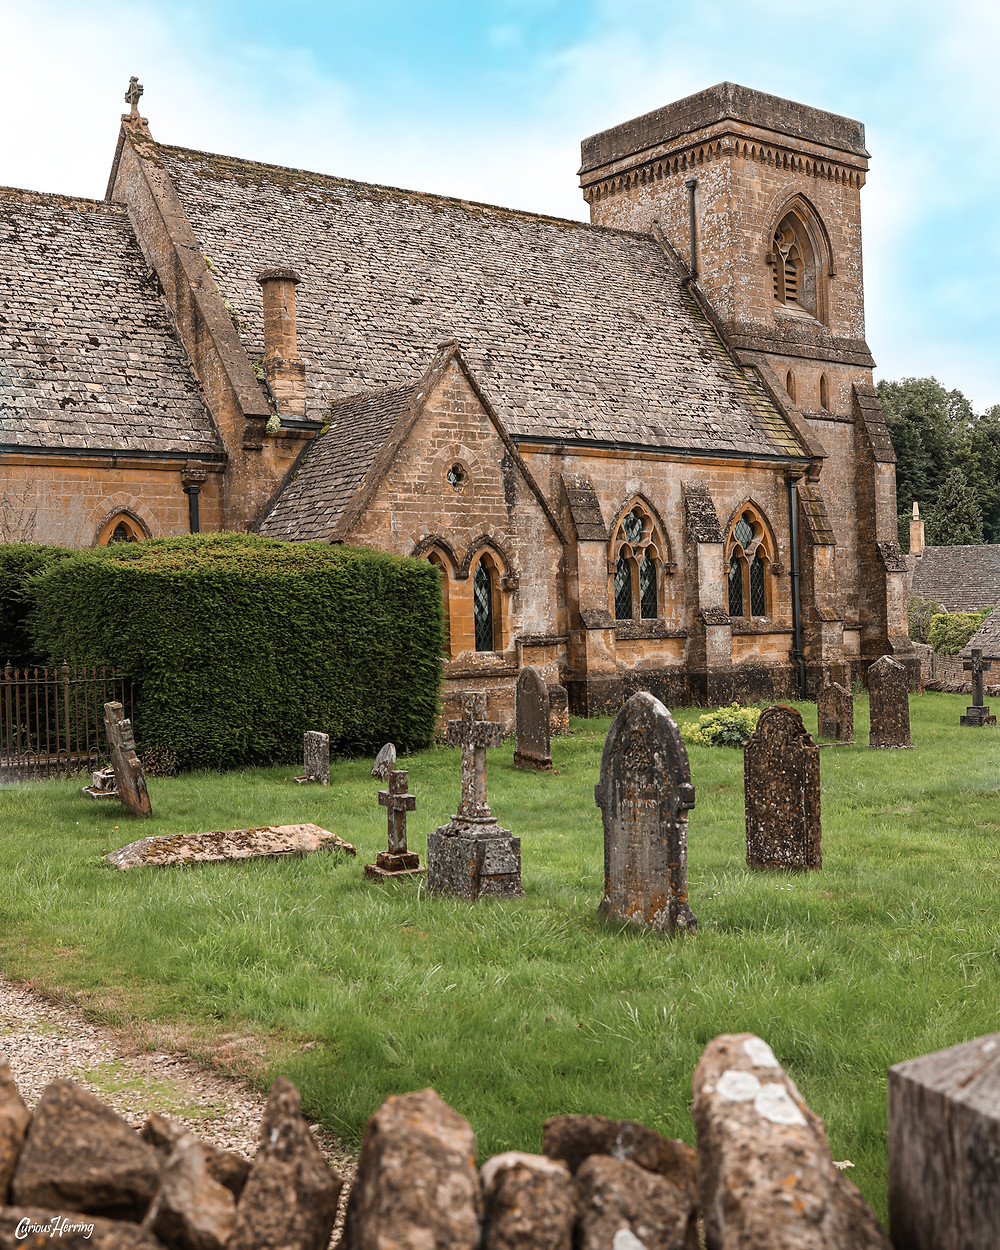 The Victorian St. Barnabas church nestled in the heart of Snowshill, Cotswolds